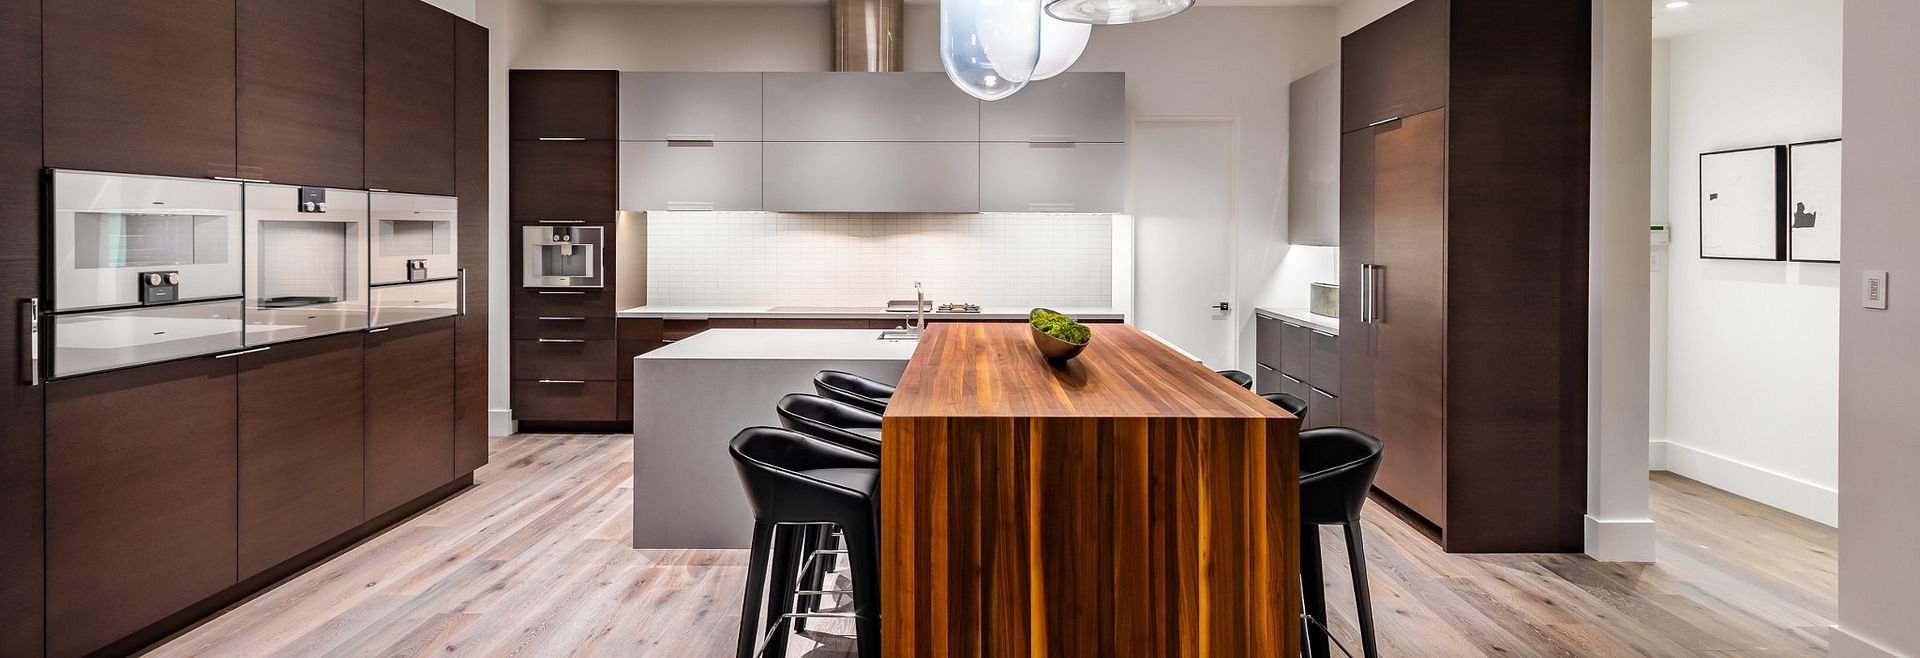 Kitchen featured in the Residence 3 By Shea Homes in Phoenix-Mesa, AZ